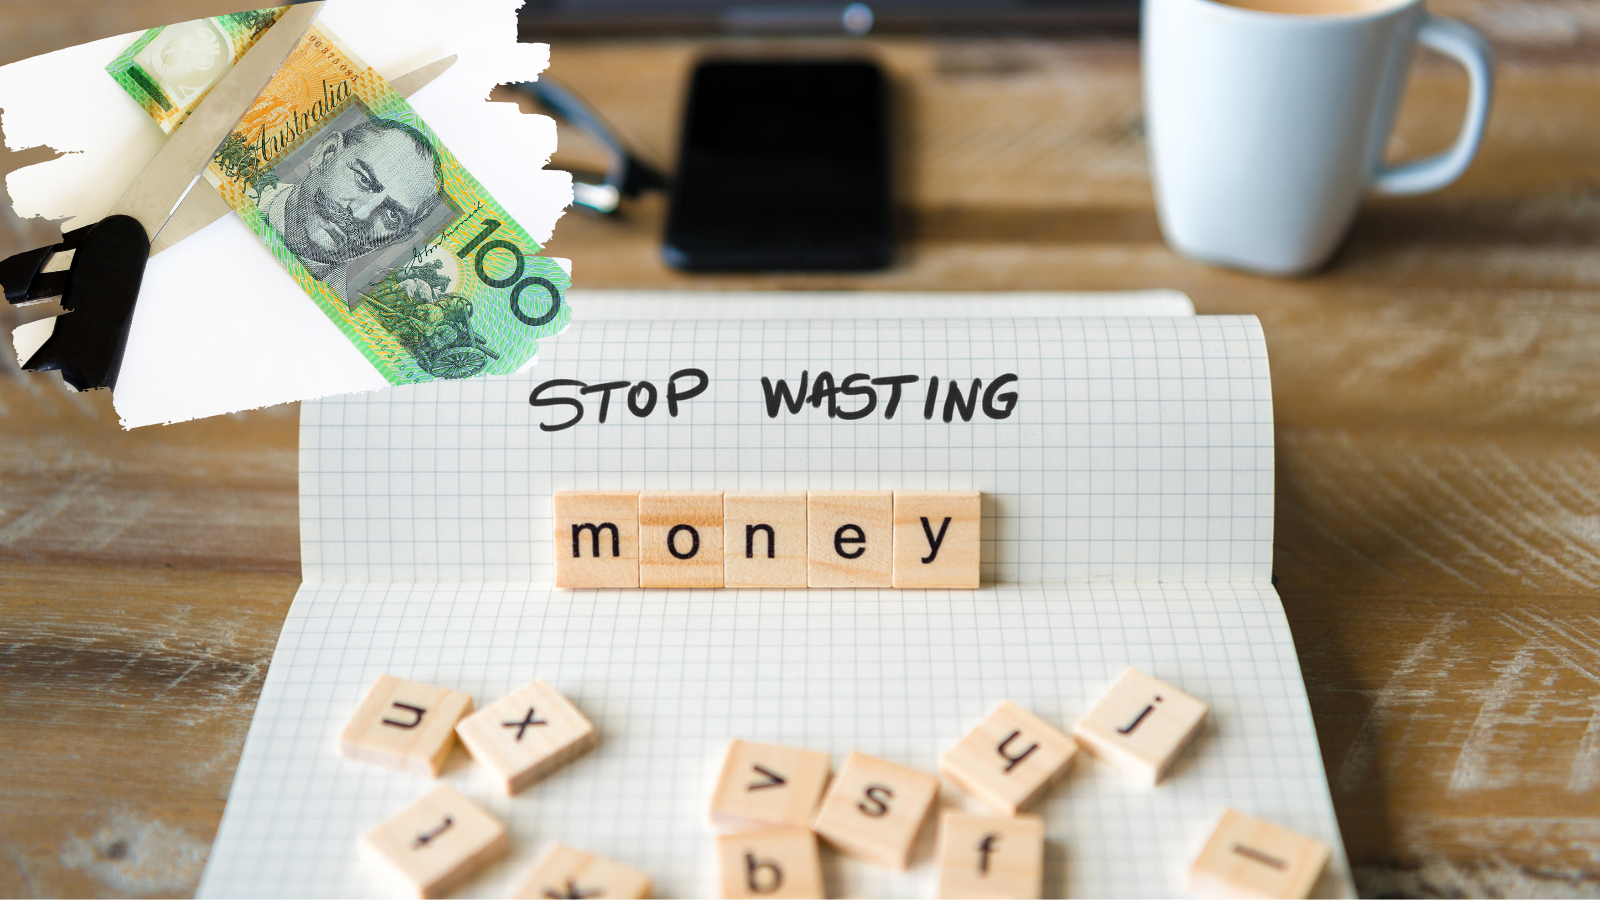 These 8 common money mistakes are costing you nearly $10,000 a year